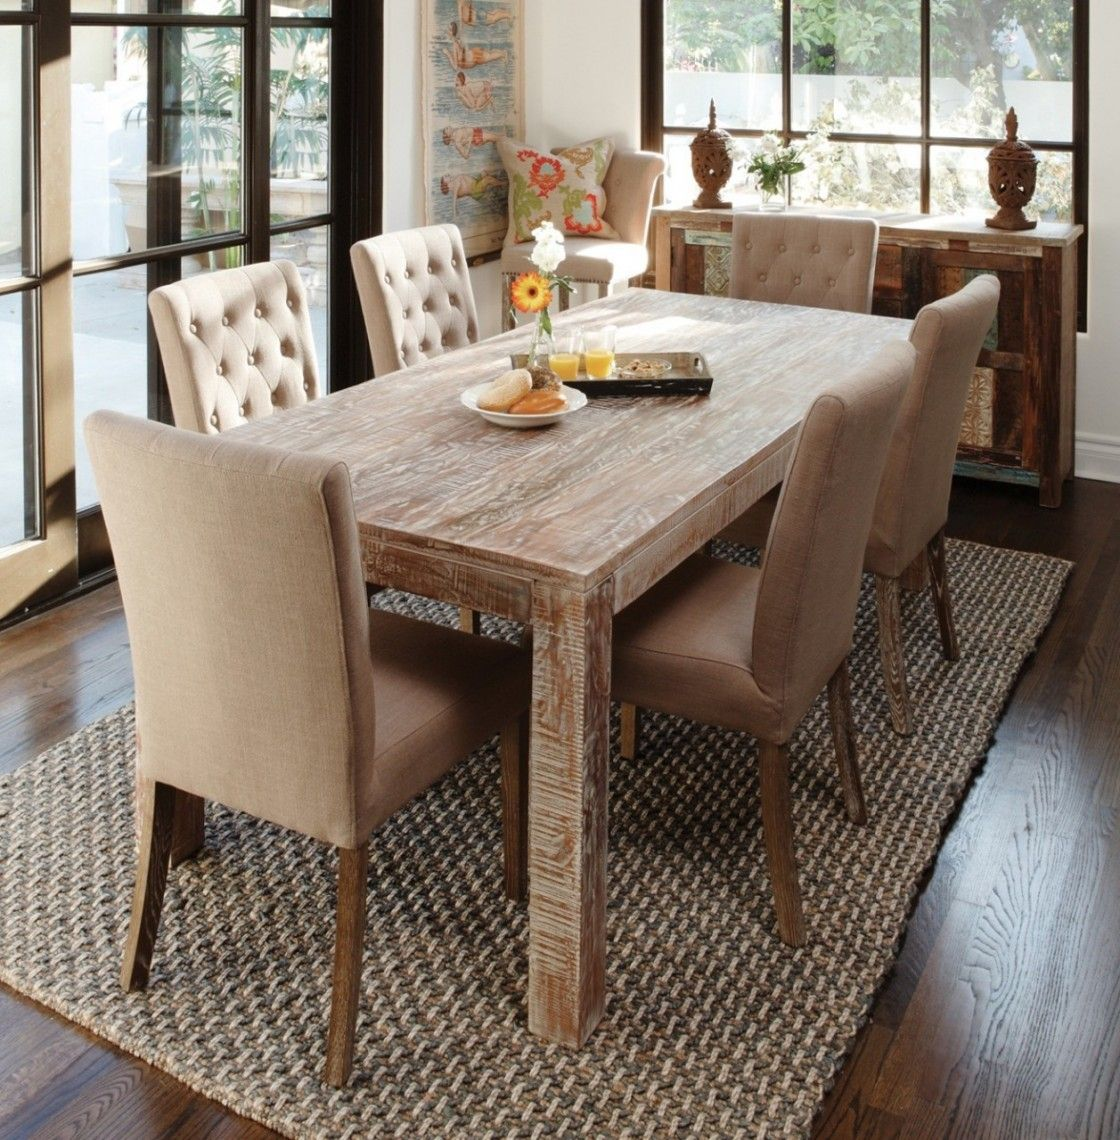 Adorable reclaimed pine wood dining table with six linen upholstered dining chair sets has an tufted backrest and square solid wood legs on are grey woven